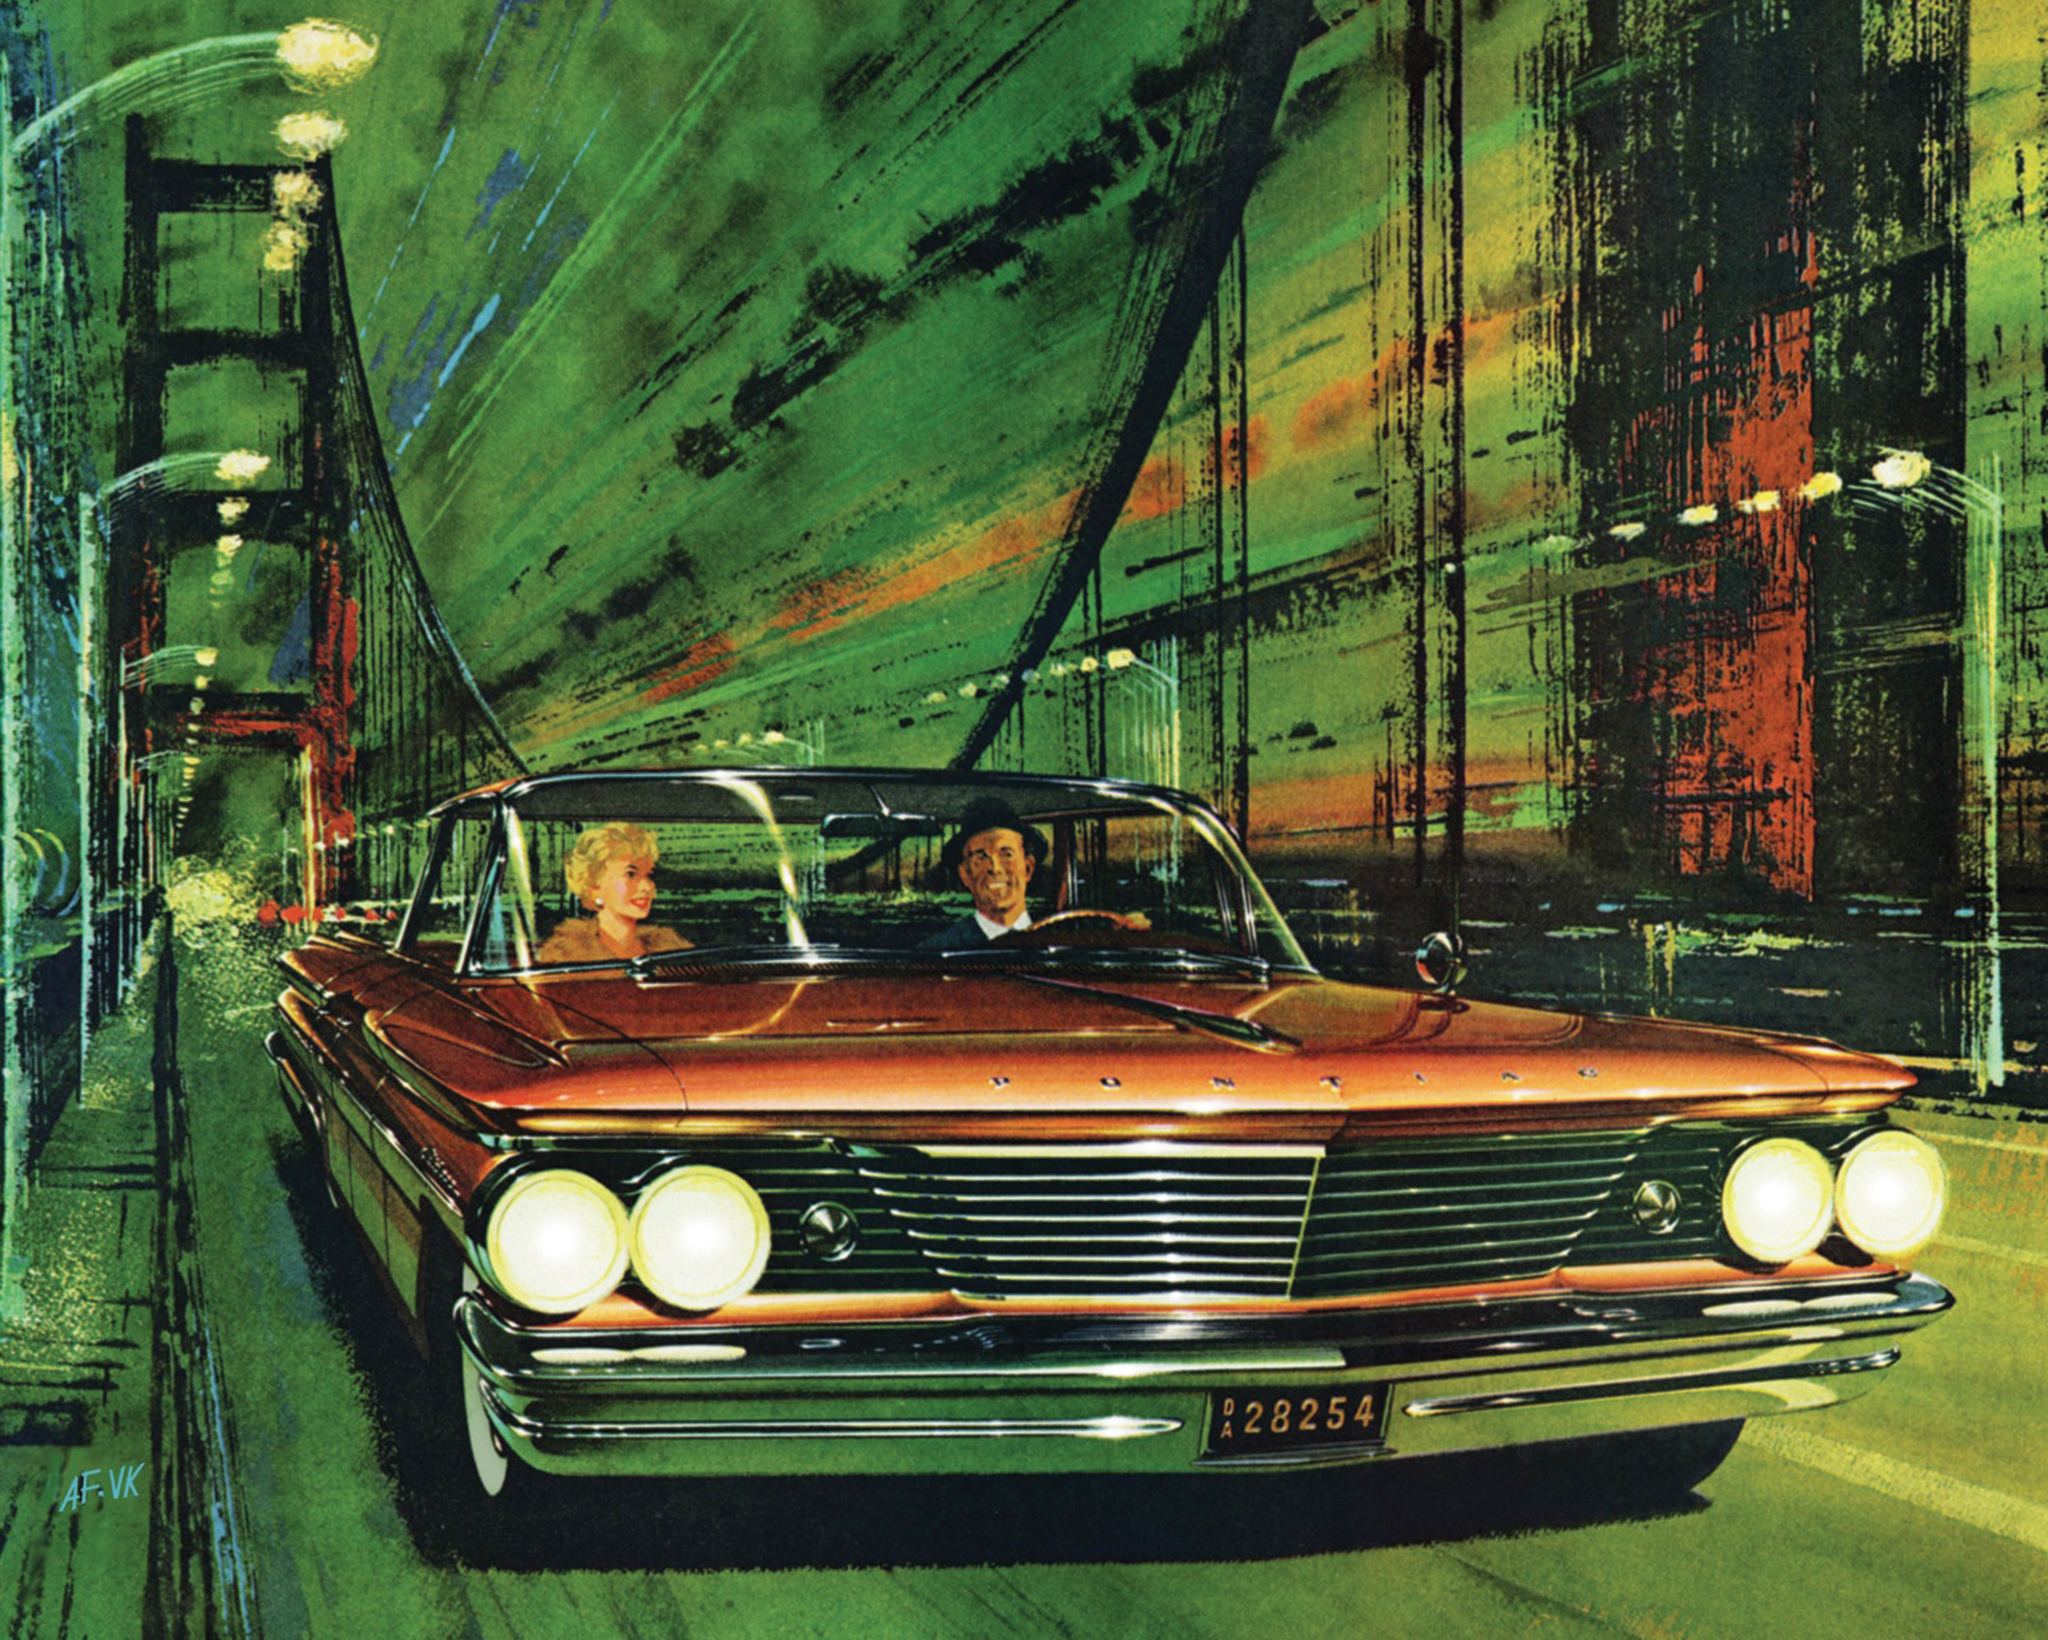 Fitz and longtime collaborator/background artist Van Kaufman were the first to introduce the strobe-light effect into automobile advertising art with this '60 Pontiac Catalina illustration titled Copper Strobe.